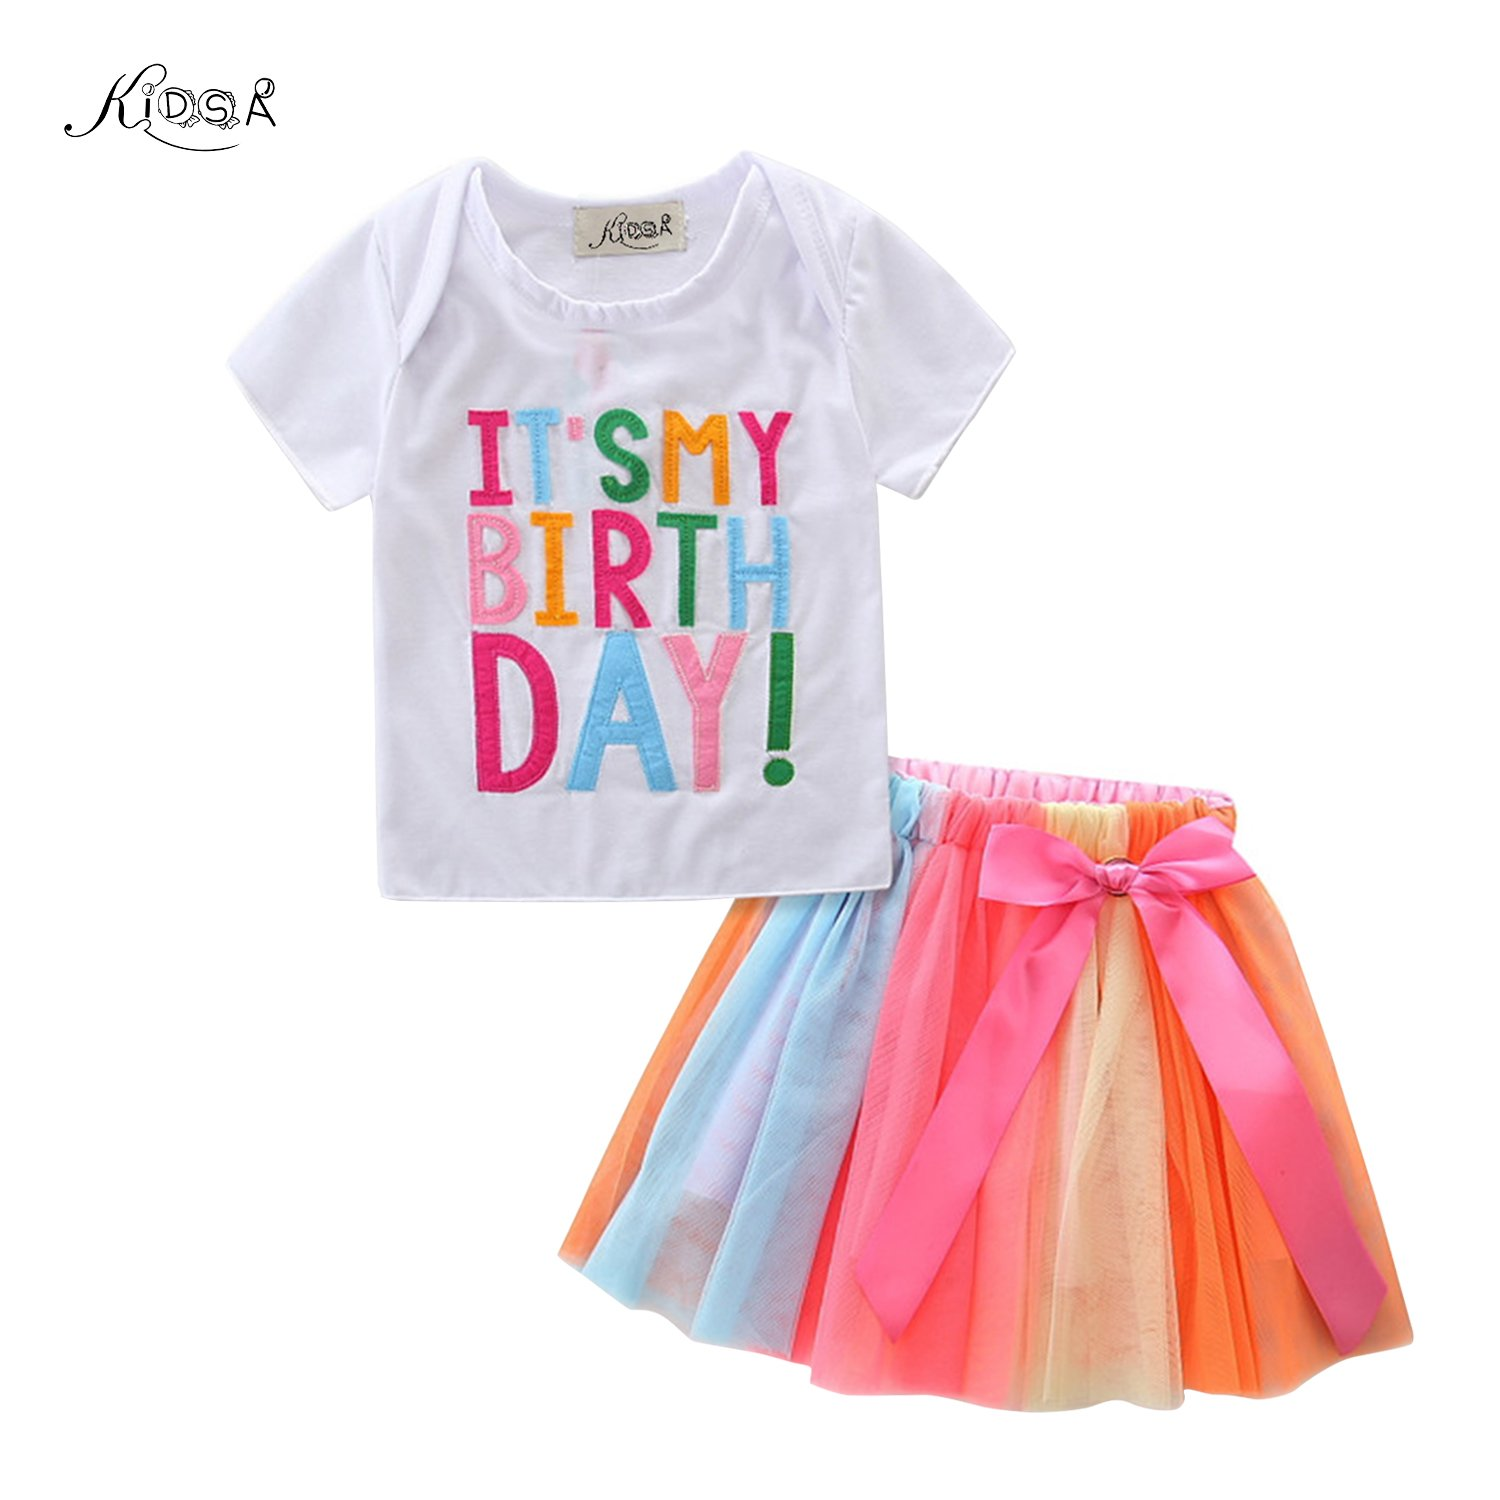 Kidsa 1-5T Baby Little Girls T-shirt + Rainbow Skirt Birthday Gift Outfits Set